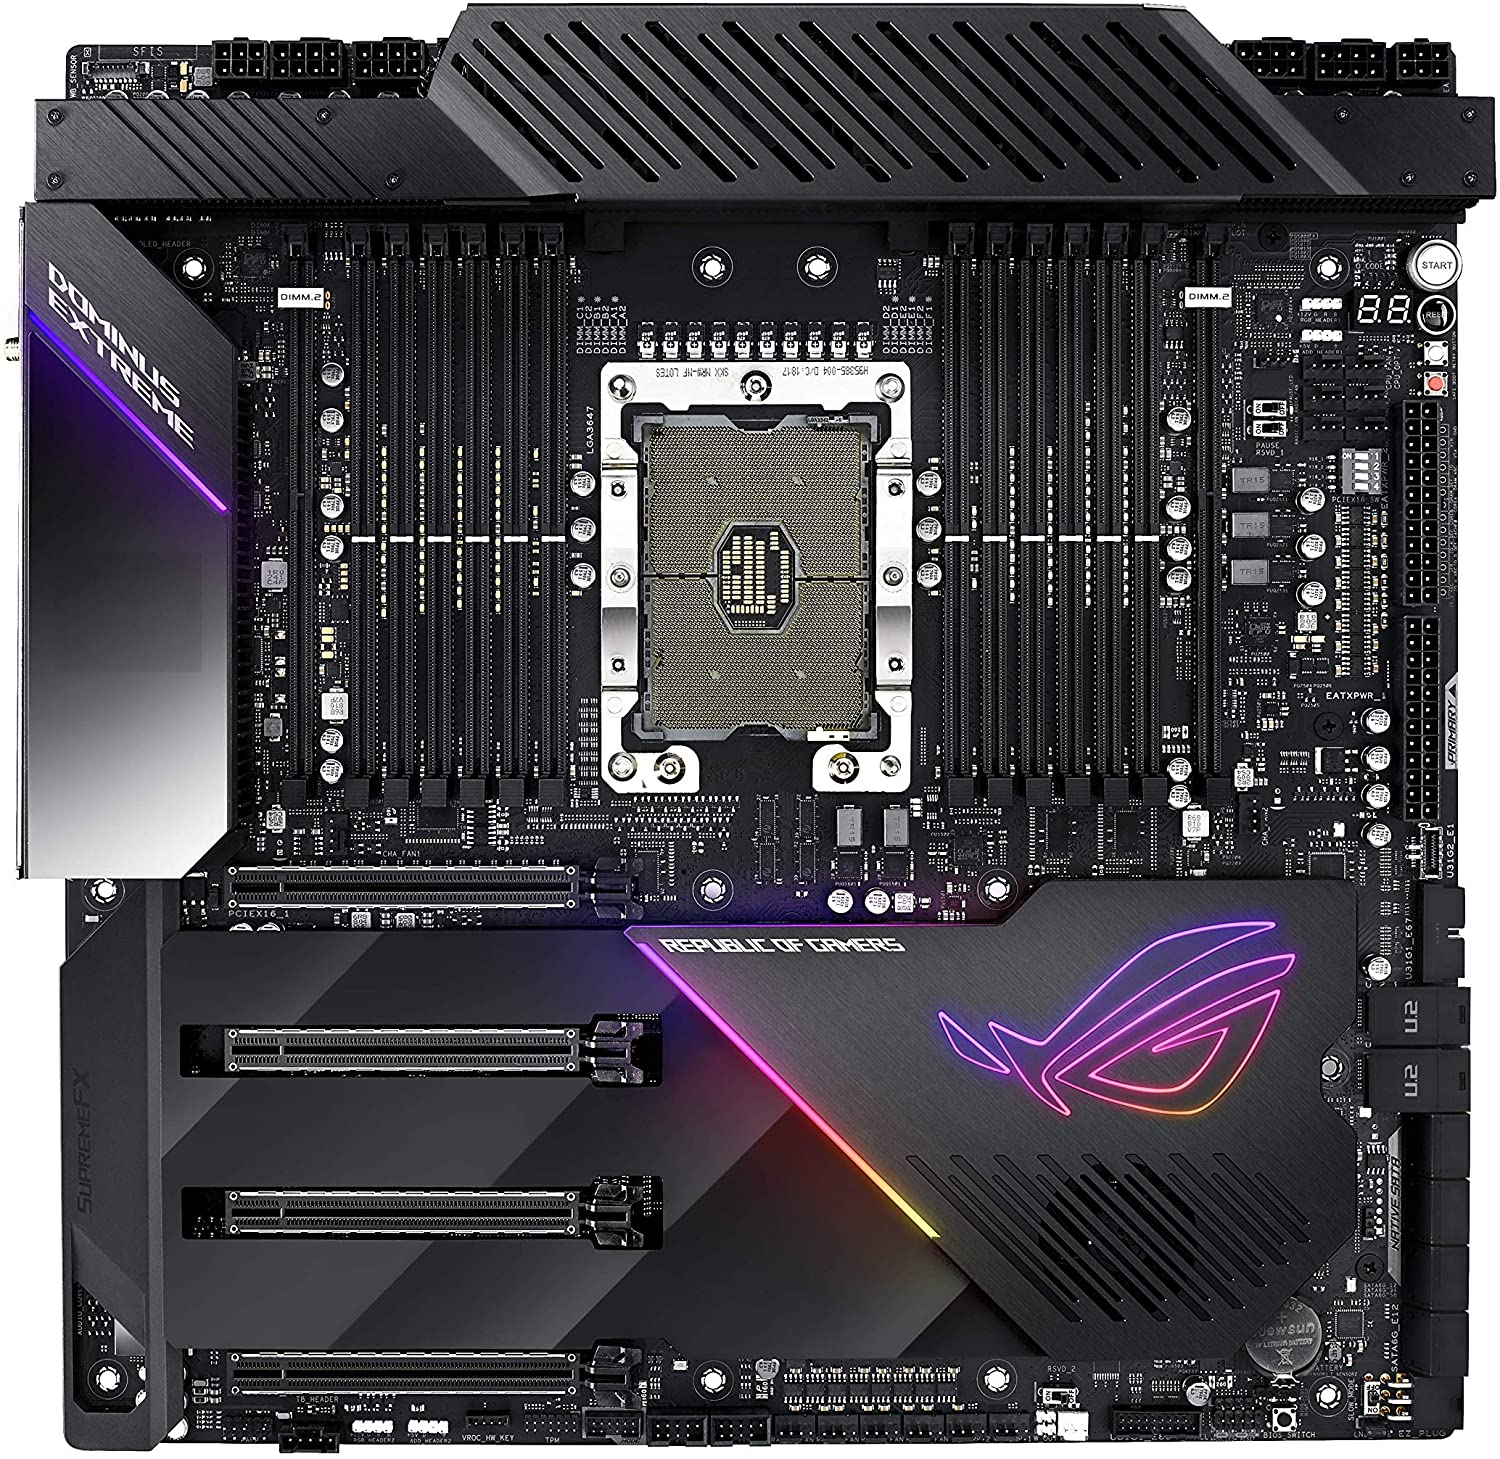 ASUS ROG Dominus Extreme Intel LGA 3647 for Xeon W-3175X (C621) 12 DIMM DDR4 M.2 U.2 EEB Performance Motherboard with Aquantia 10G LAN, USB 3.1